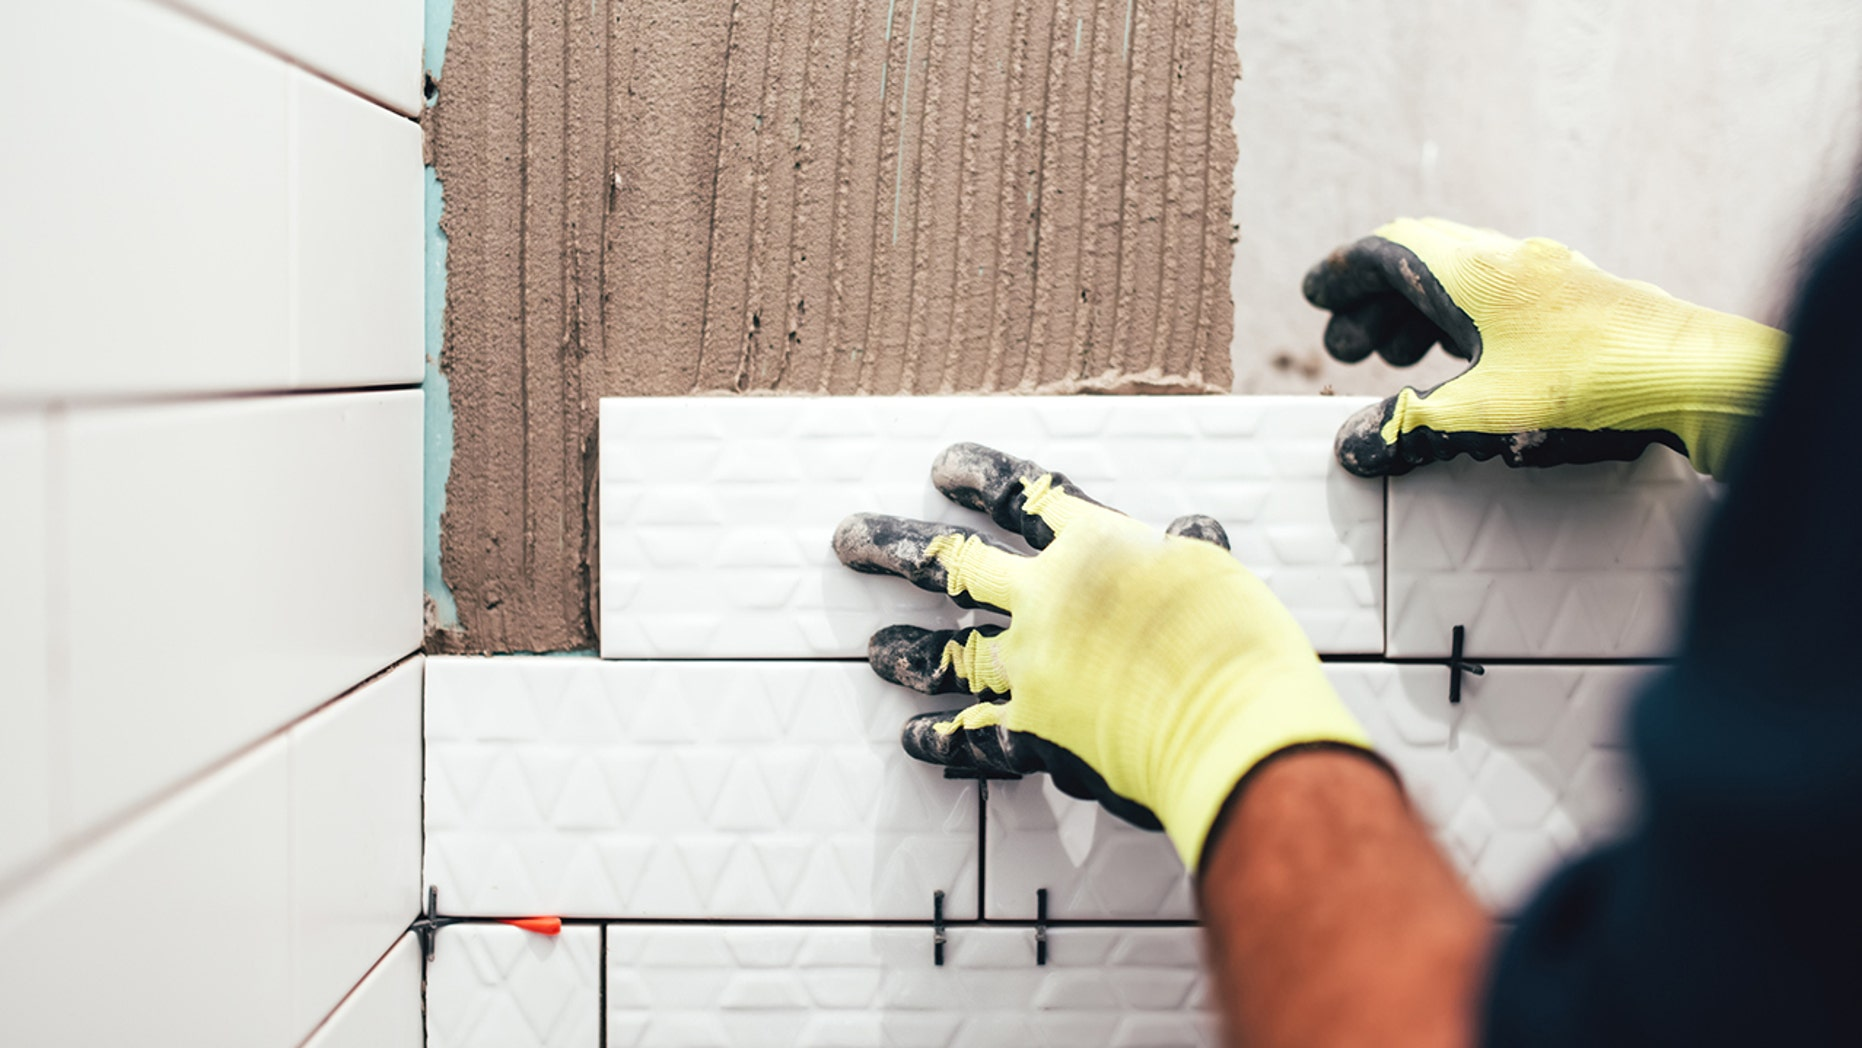 Thirty-two percent of American homeowners have at least one home improvement project they're putting off, a new poll finds.